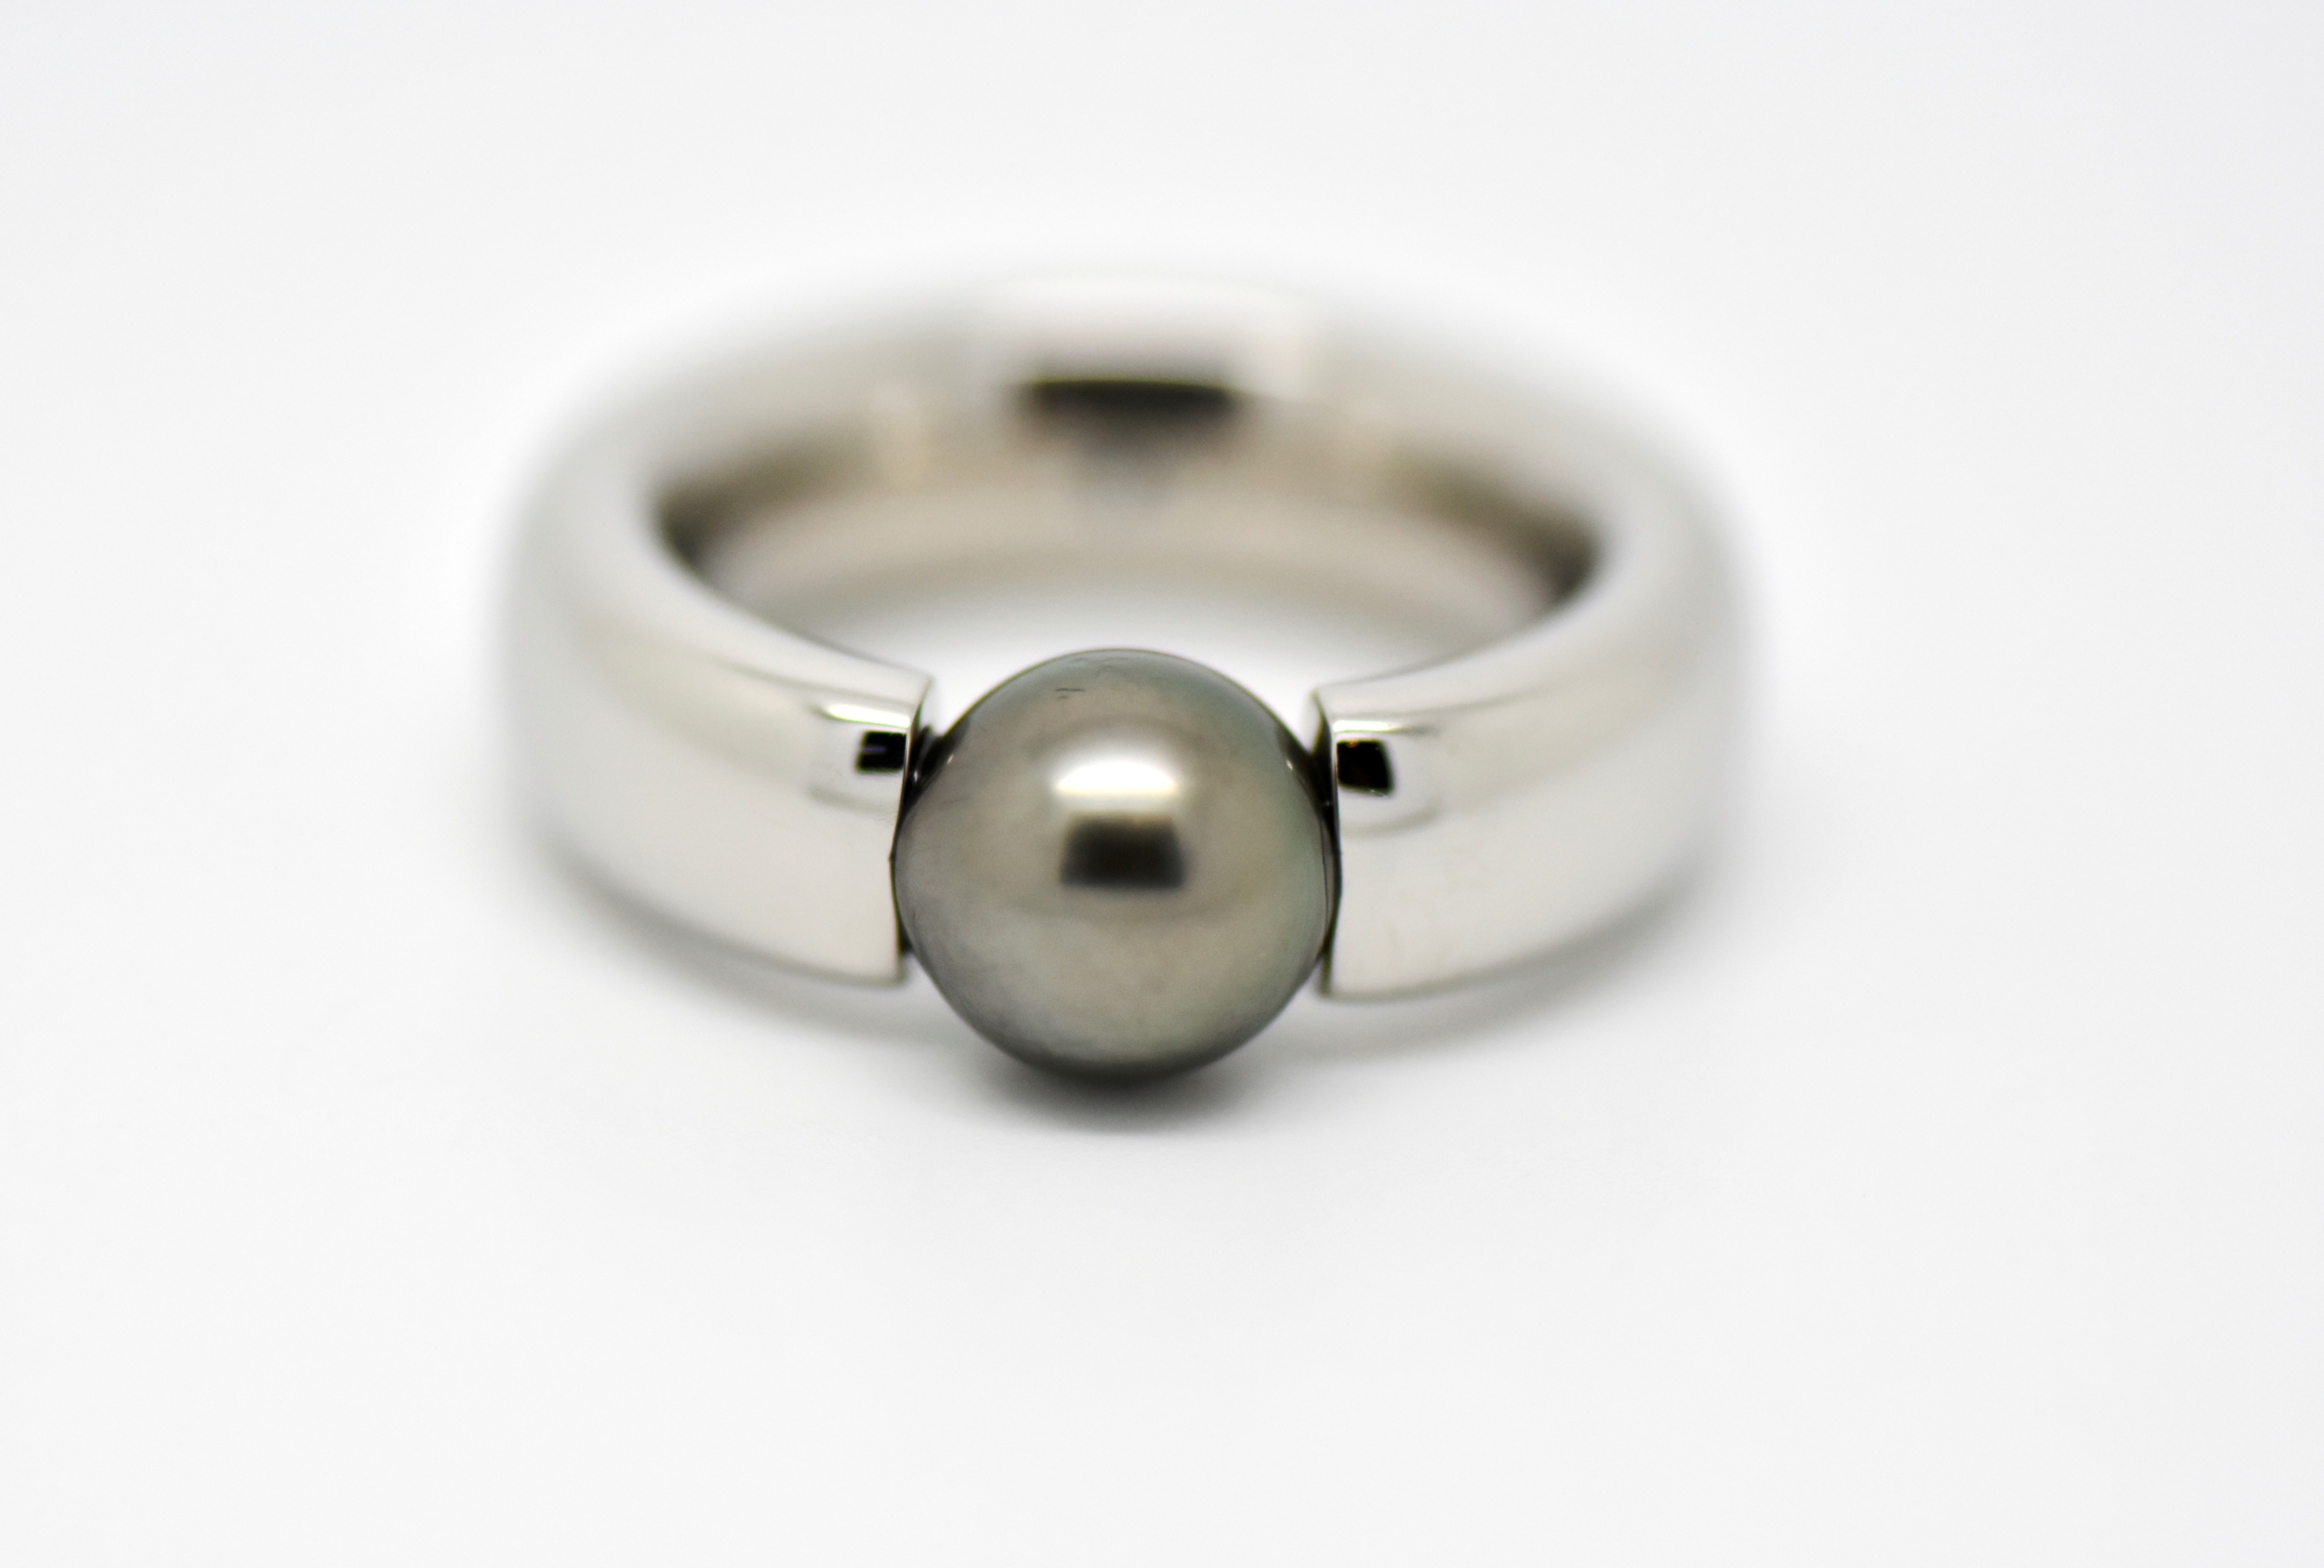 BEAD Tension ring made of polished hypoallergenic steel with a 8 mm round Tahiti pearl